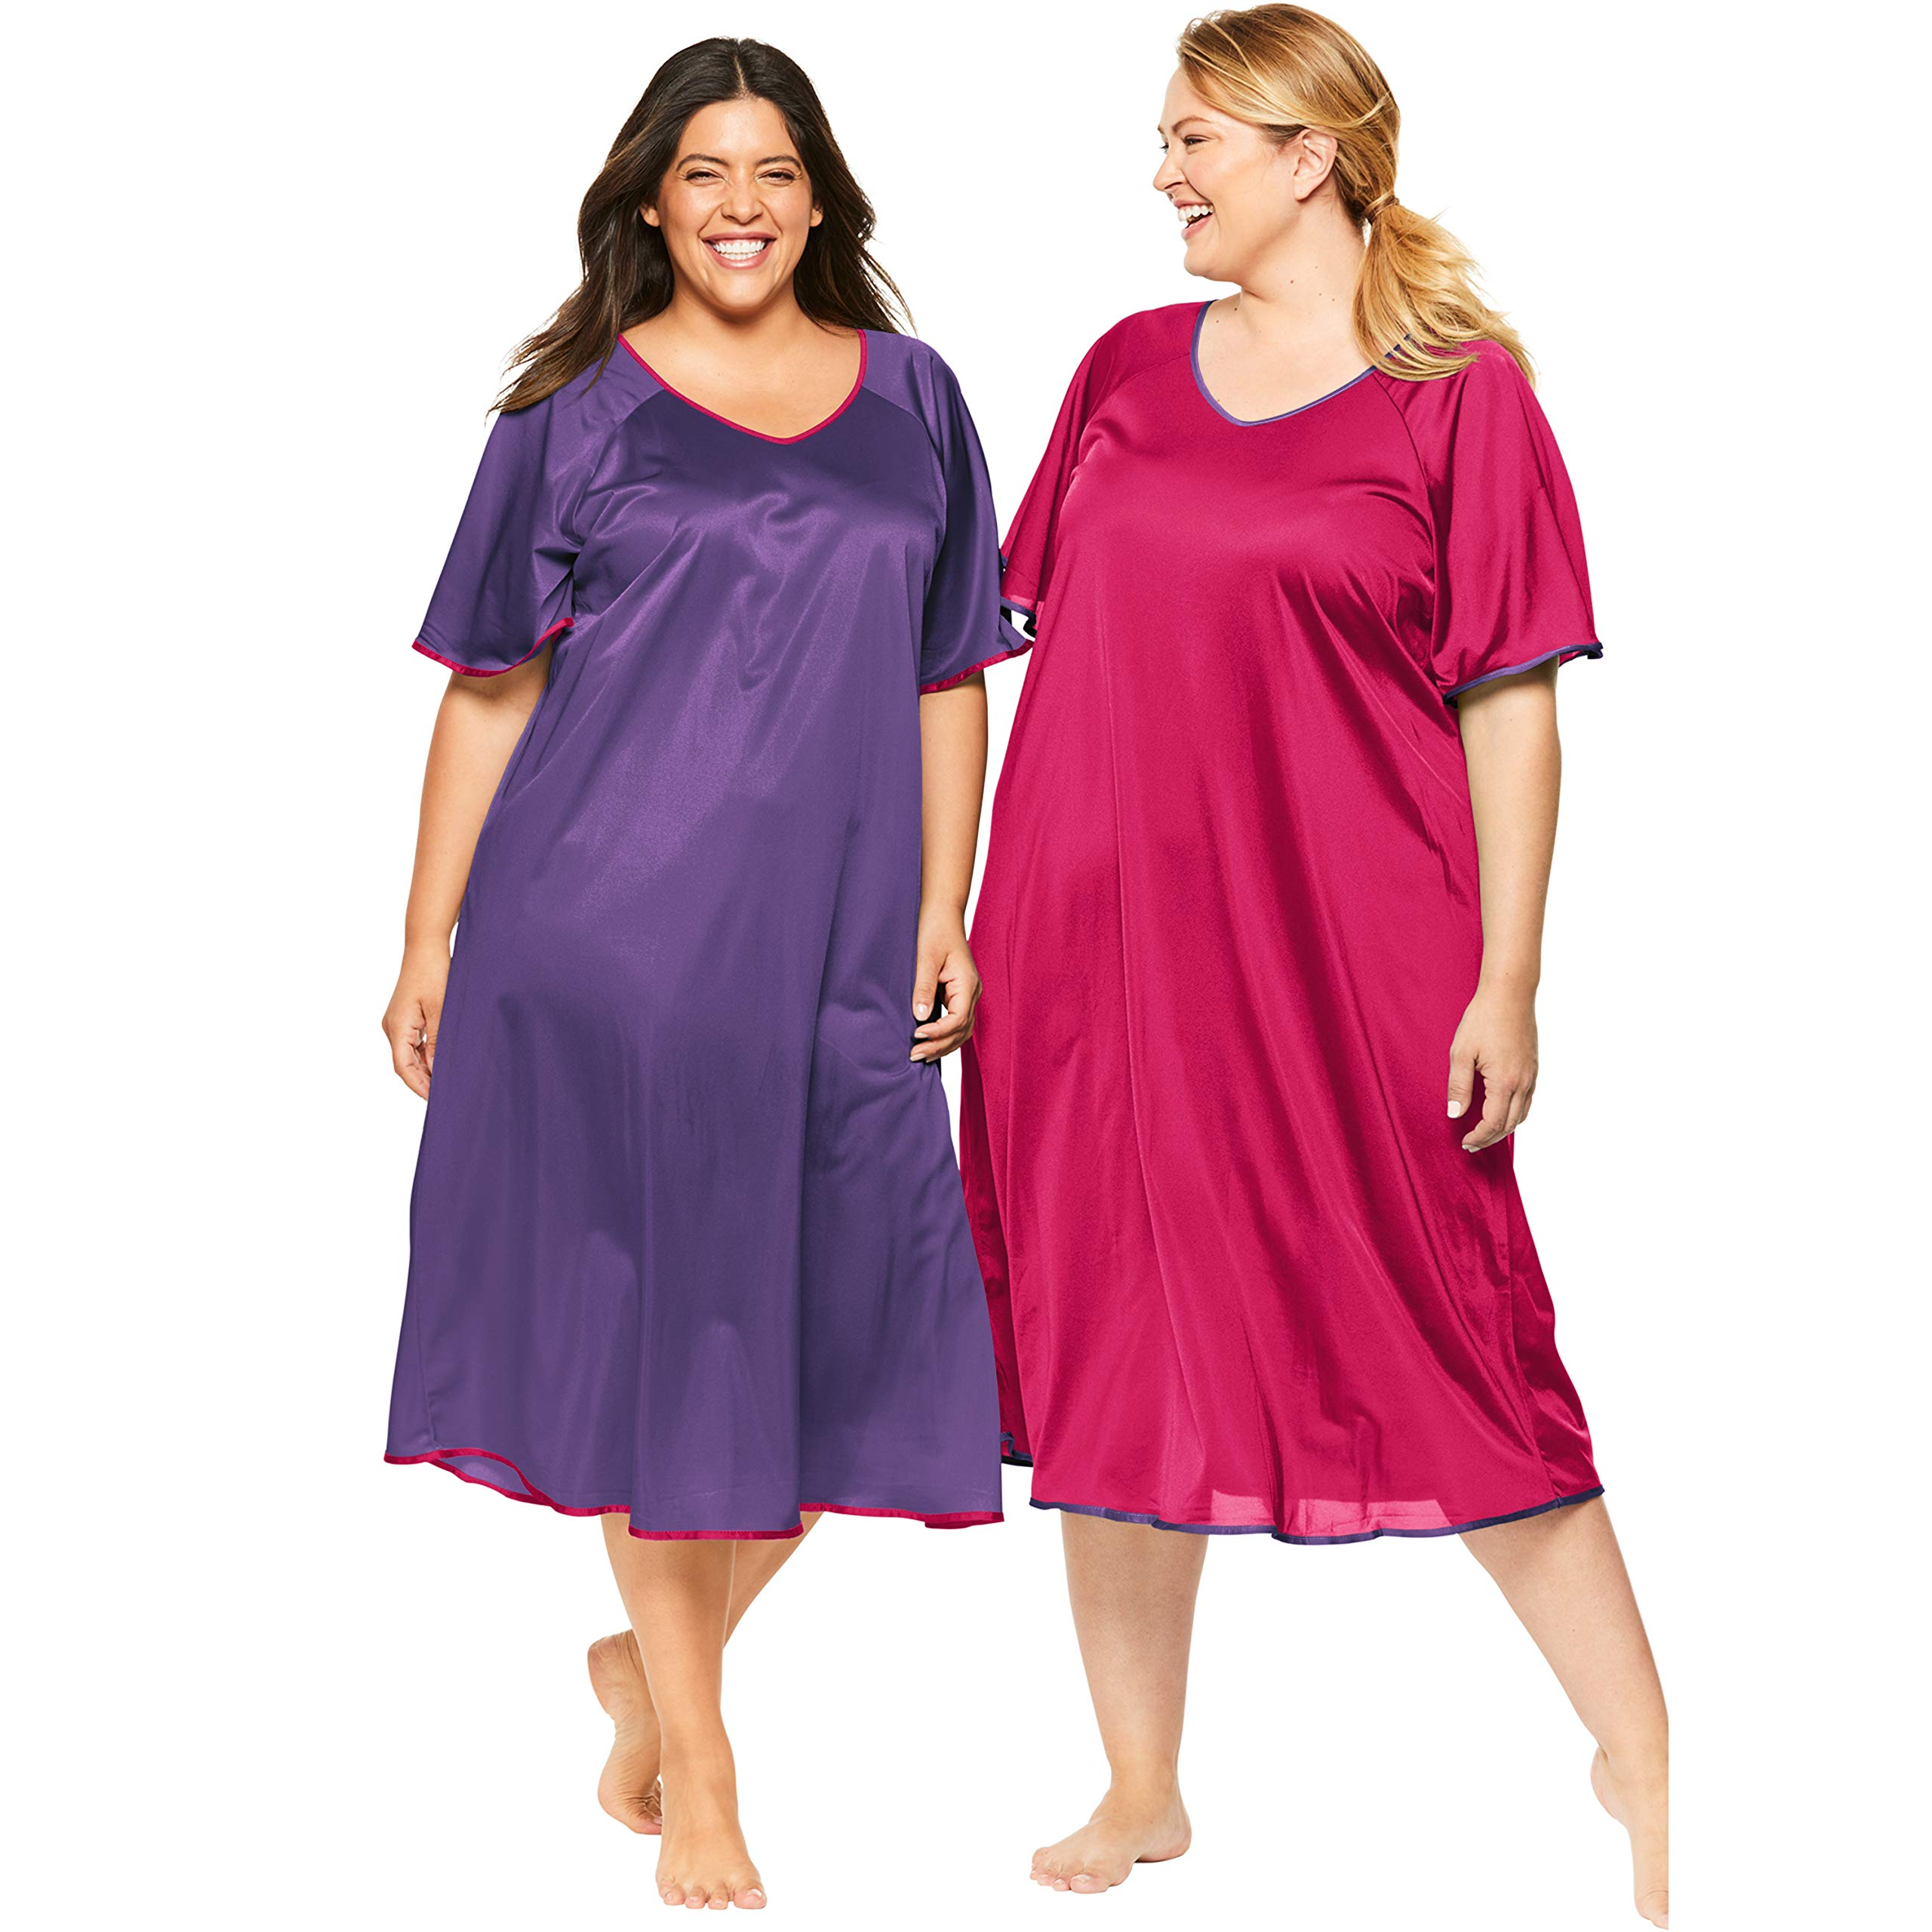 Only Necessities Women's Plus Size 2-Pack Short Silky Gown - Rich Violet Pink Burst, 6X by Only Necessities